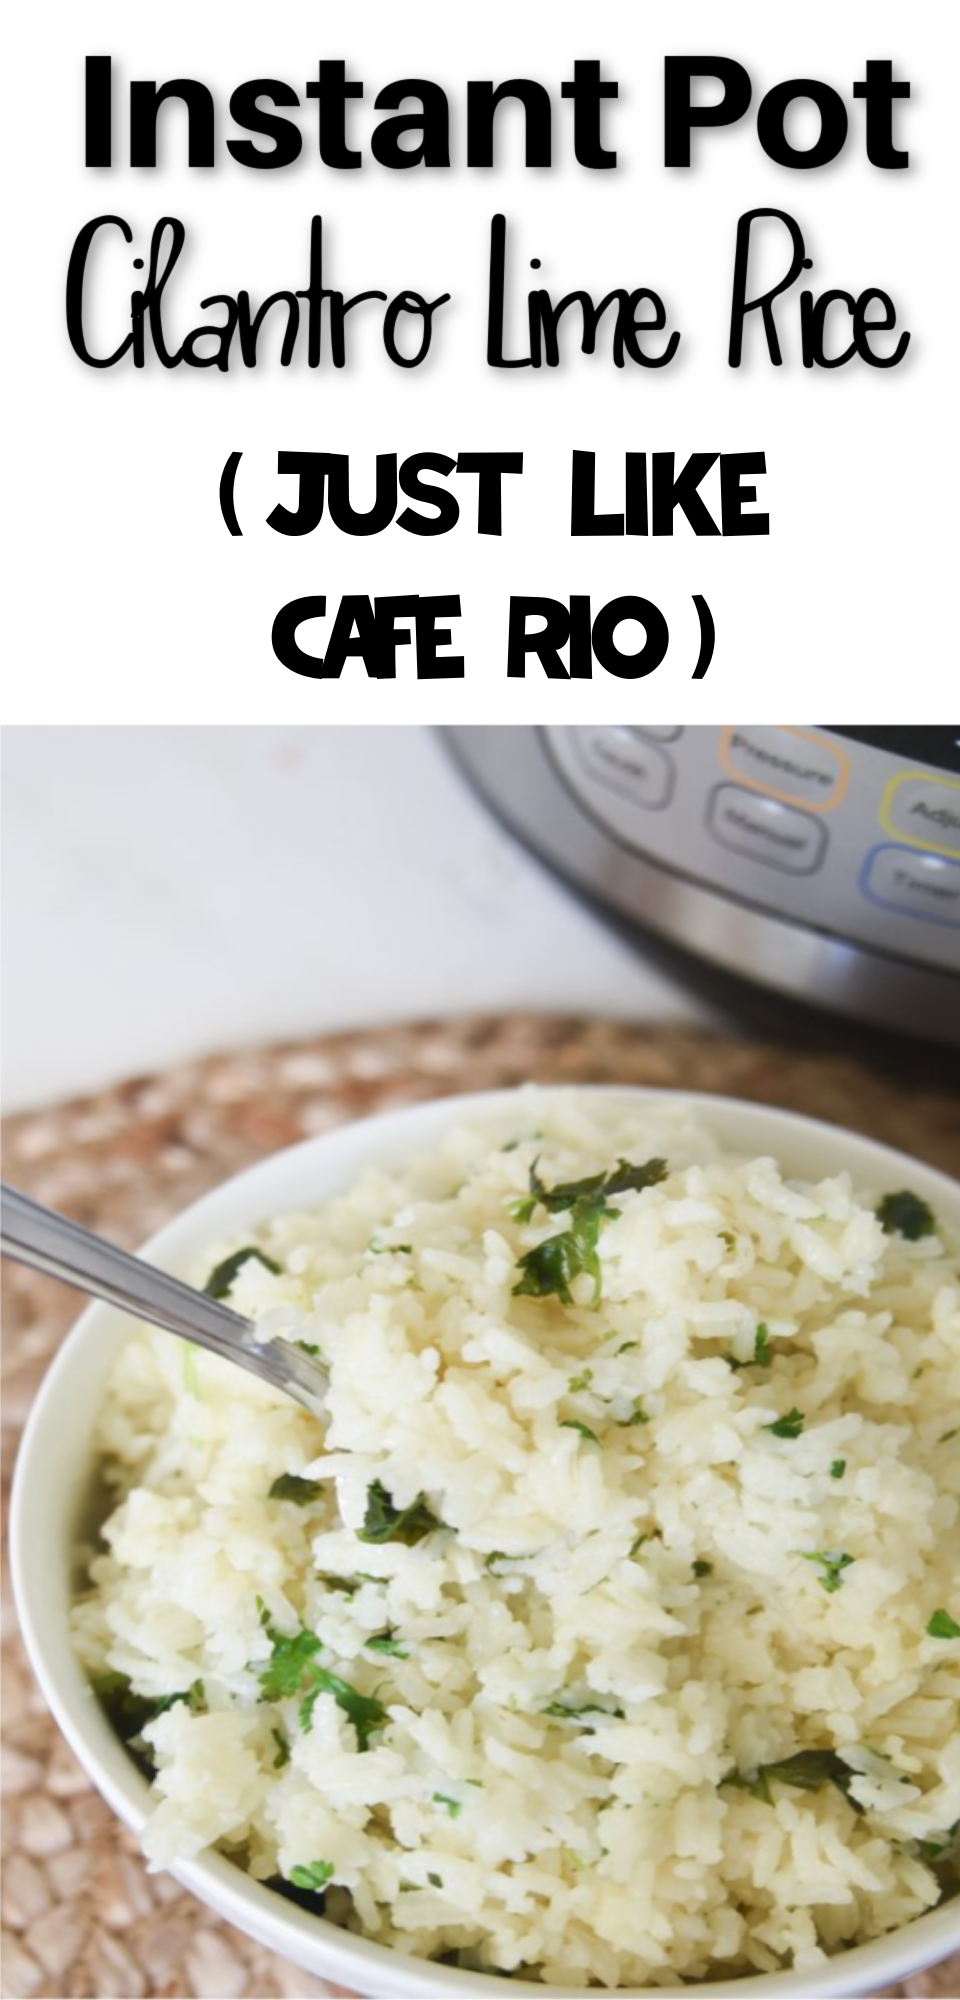 Cilantro Lime Rice is a flavorful side dish that is always a hit. You can make Instant Pot rice which makes it quick and easy! This Copycat Cafe Rio Cilantro Rice is to DIE for! via @simplysidedishes89